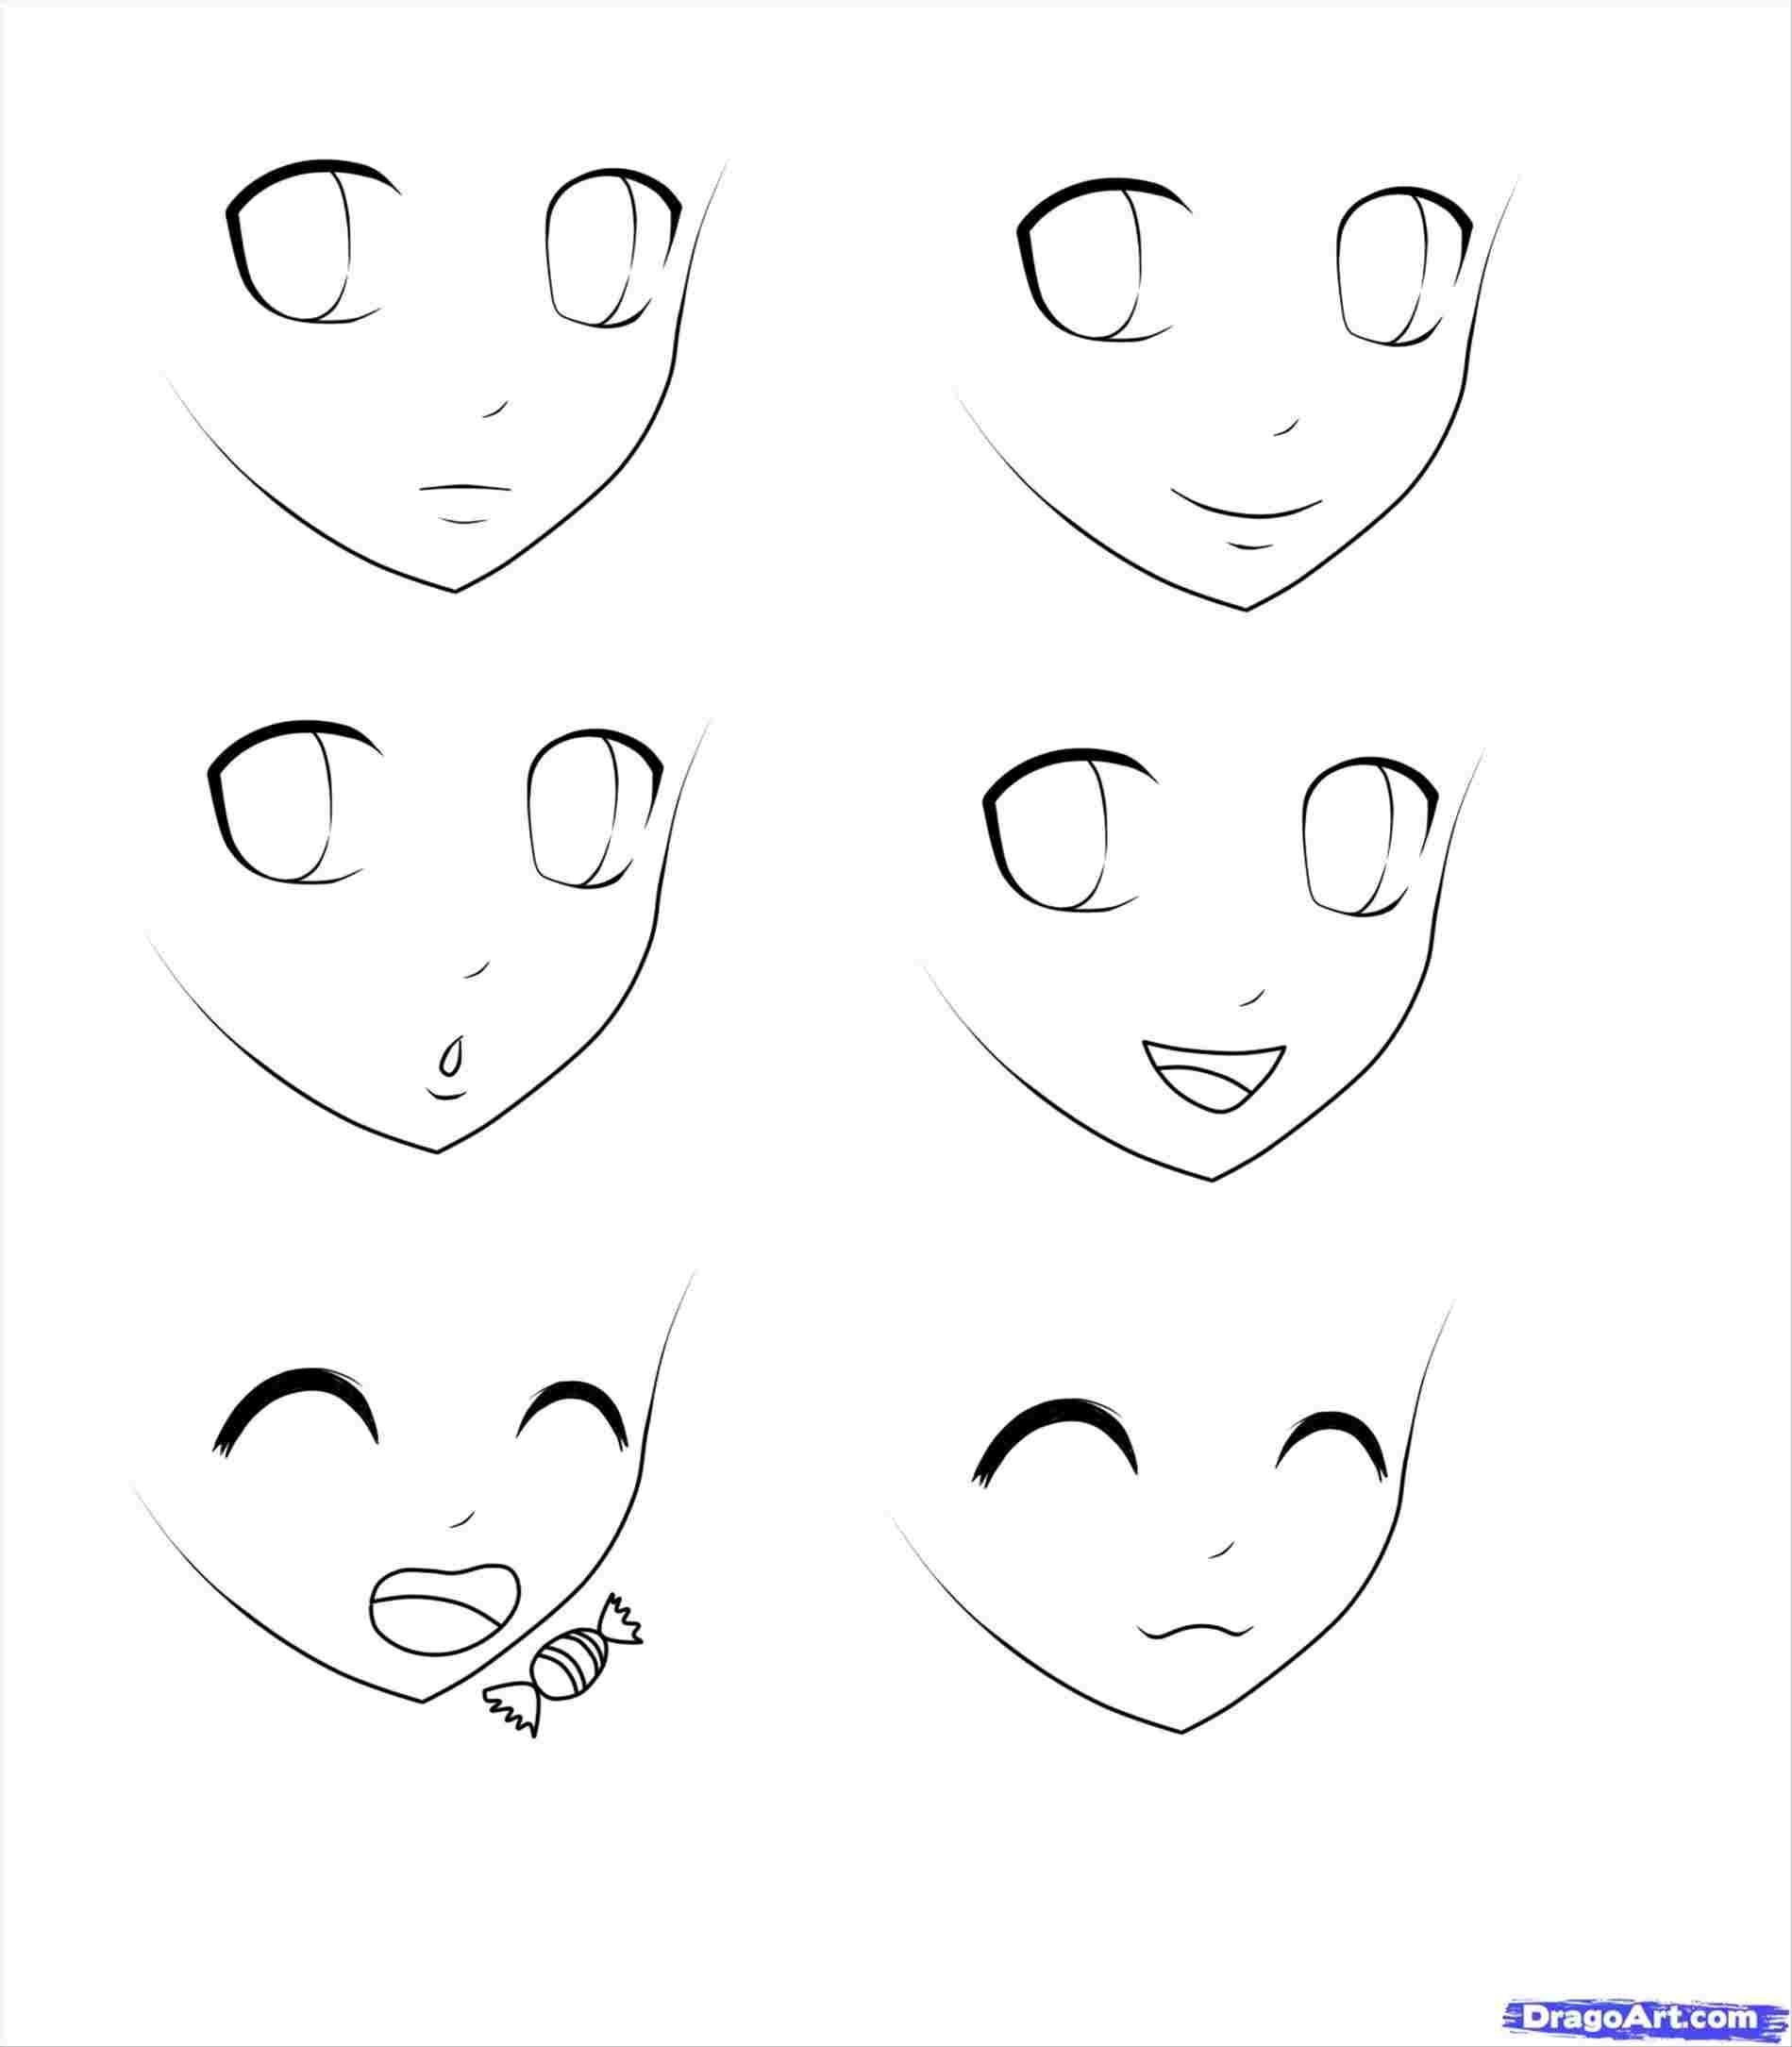 Likable Tutorials How To Draw Anime Side View Anime Man Side View In 2020 Anime Mouth Drawing Nose Drawing Anime Mouths